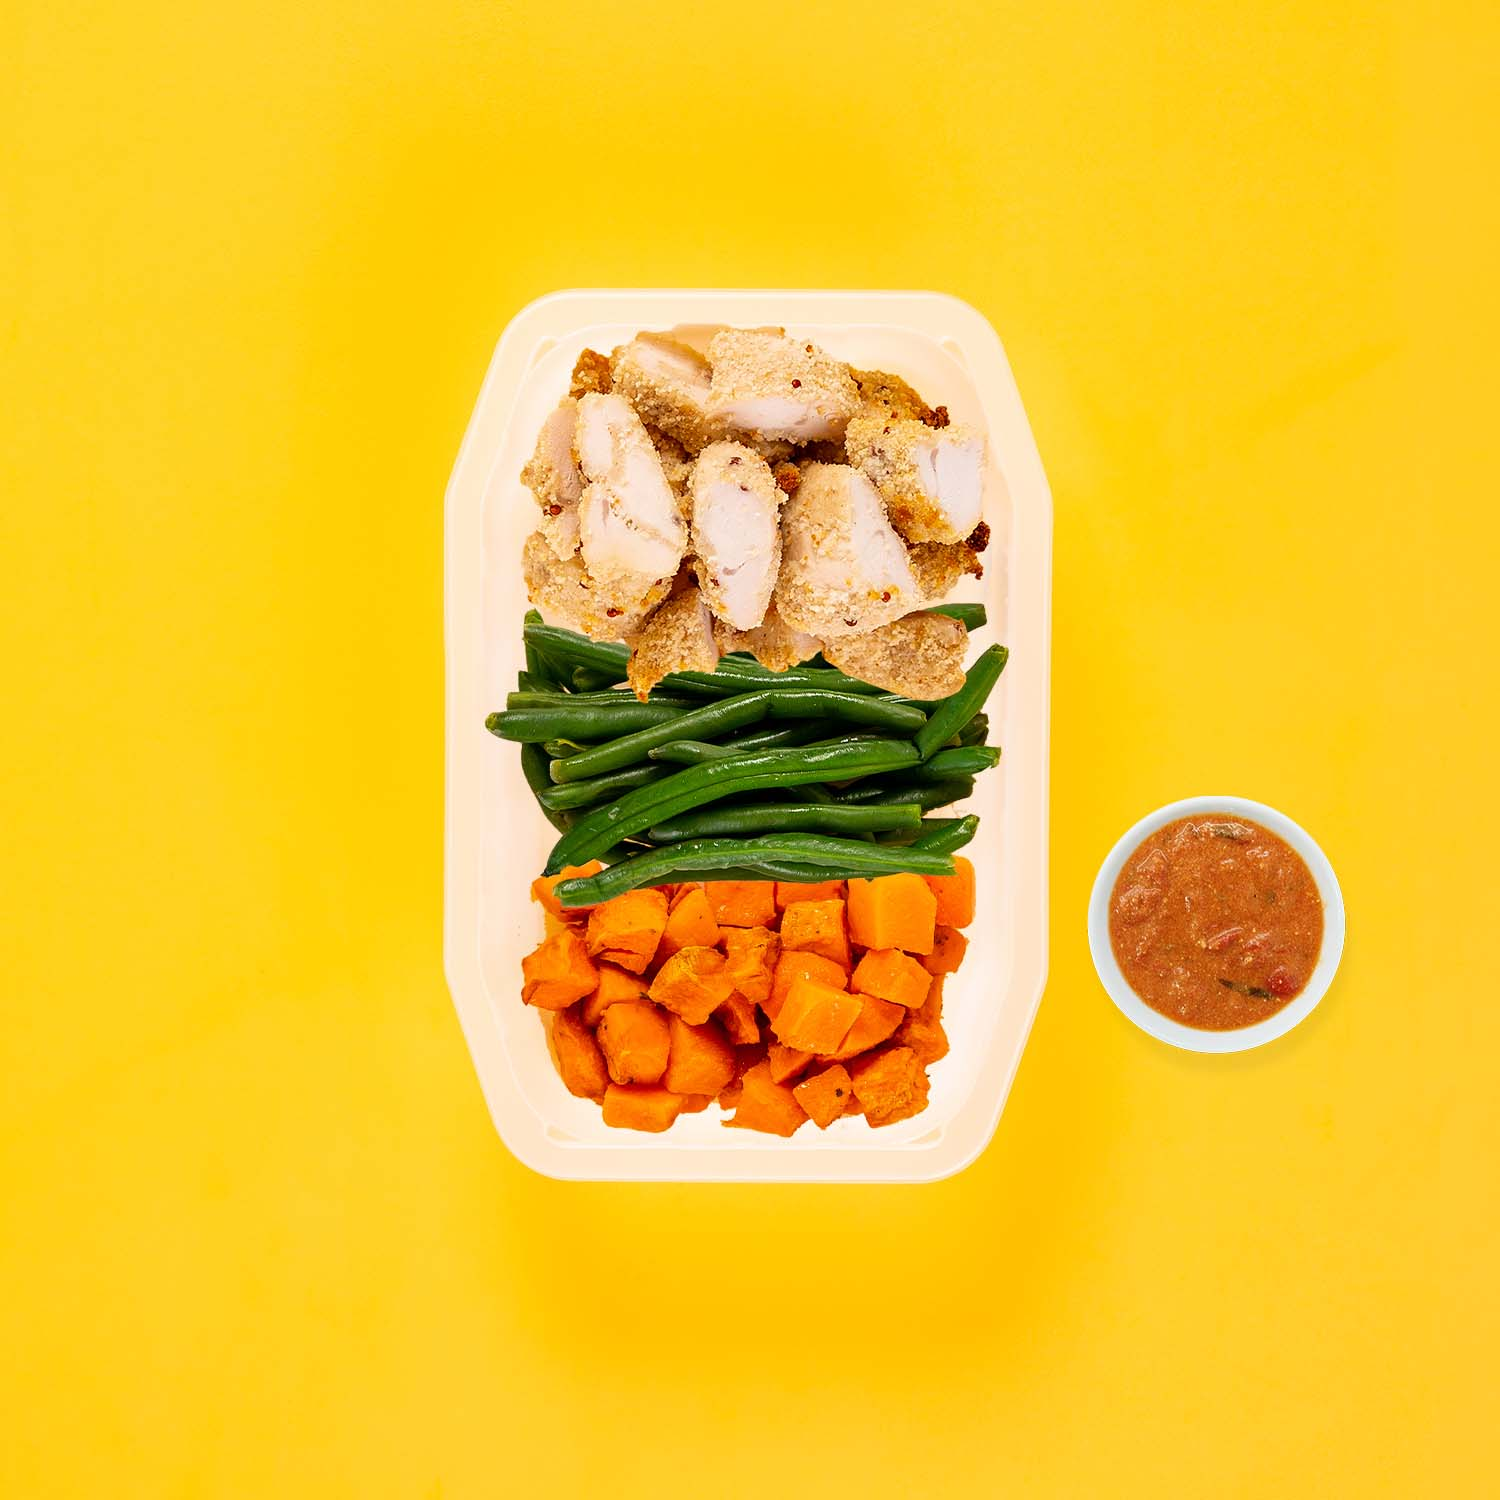 150g Quinoa Chicken Tenders 100g Green Beans 150g Rosemary Baked Sweet Potato Thai Red Curry